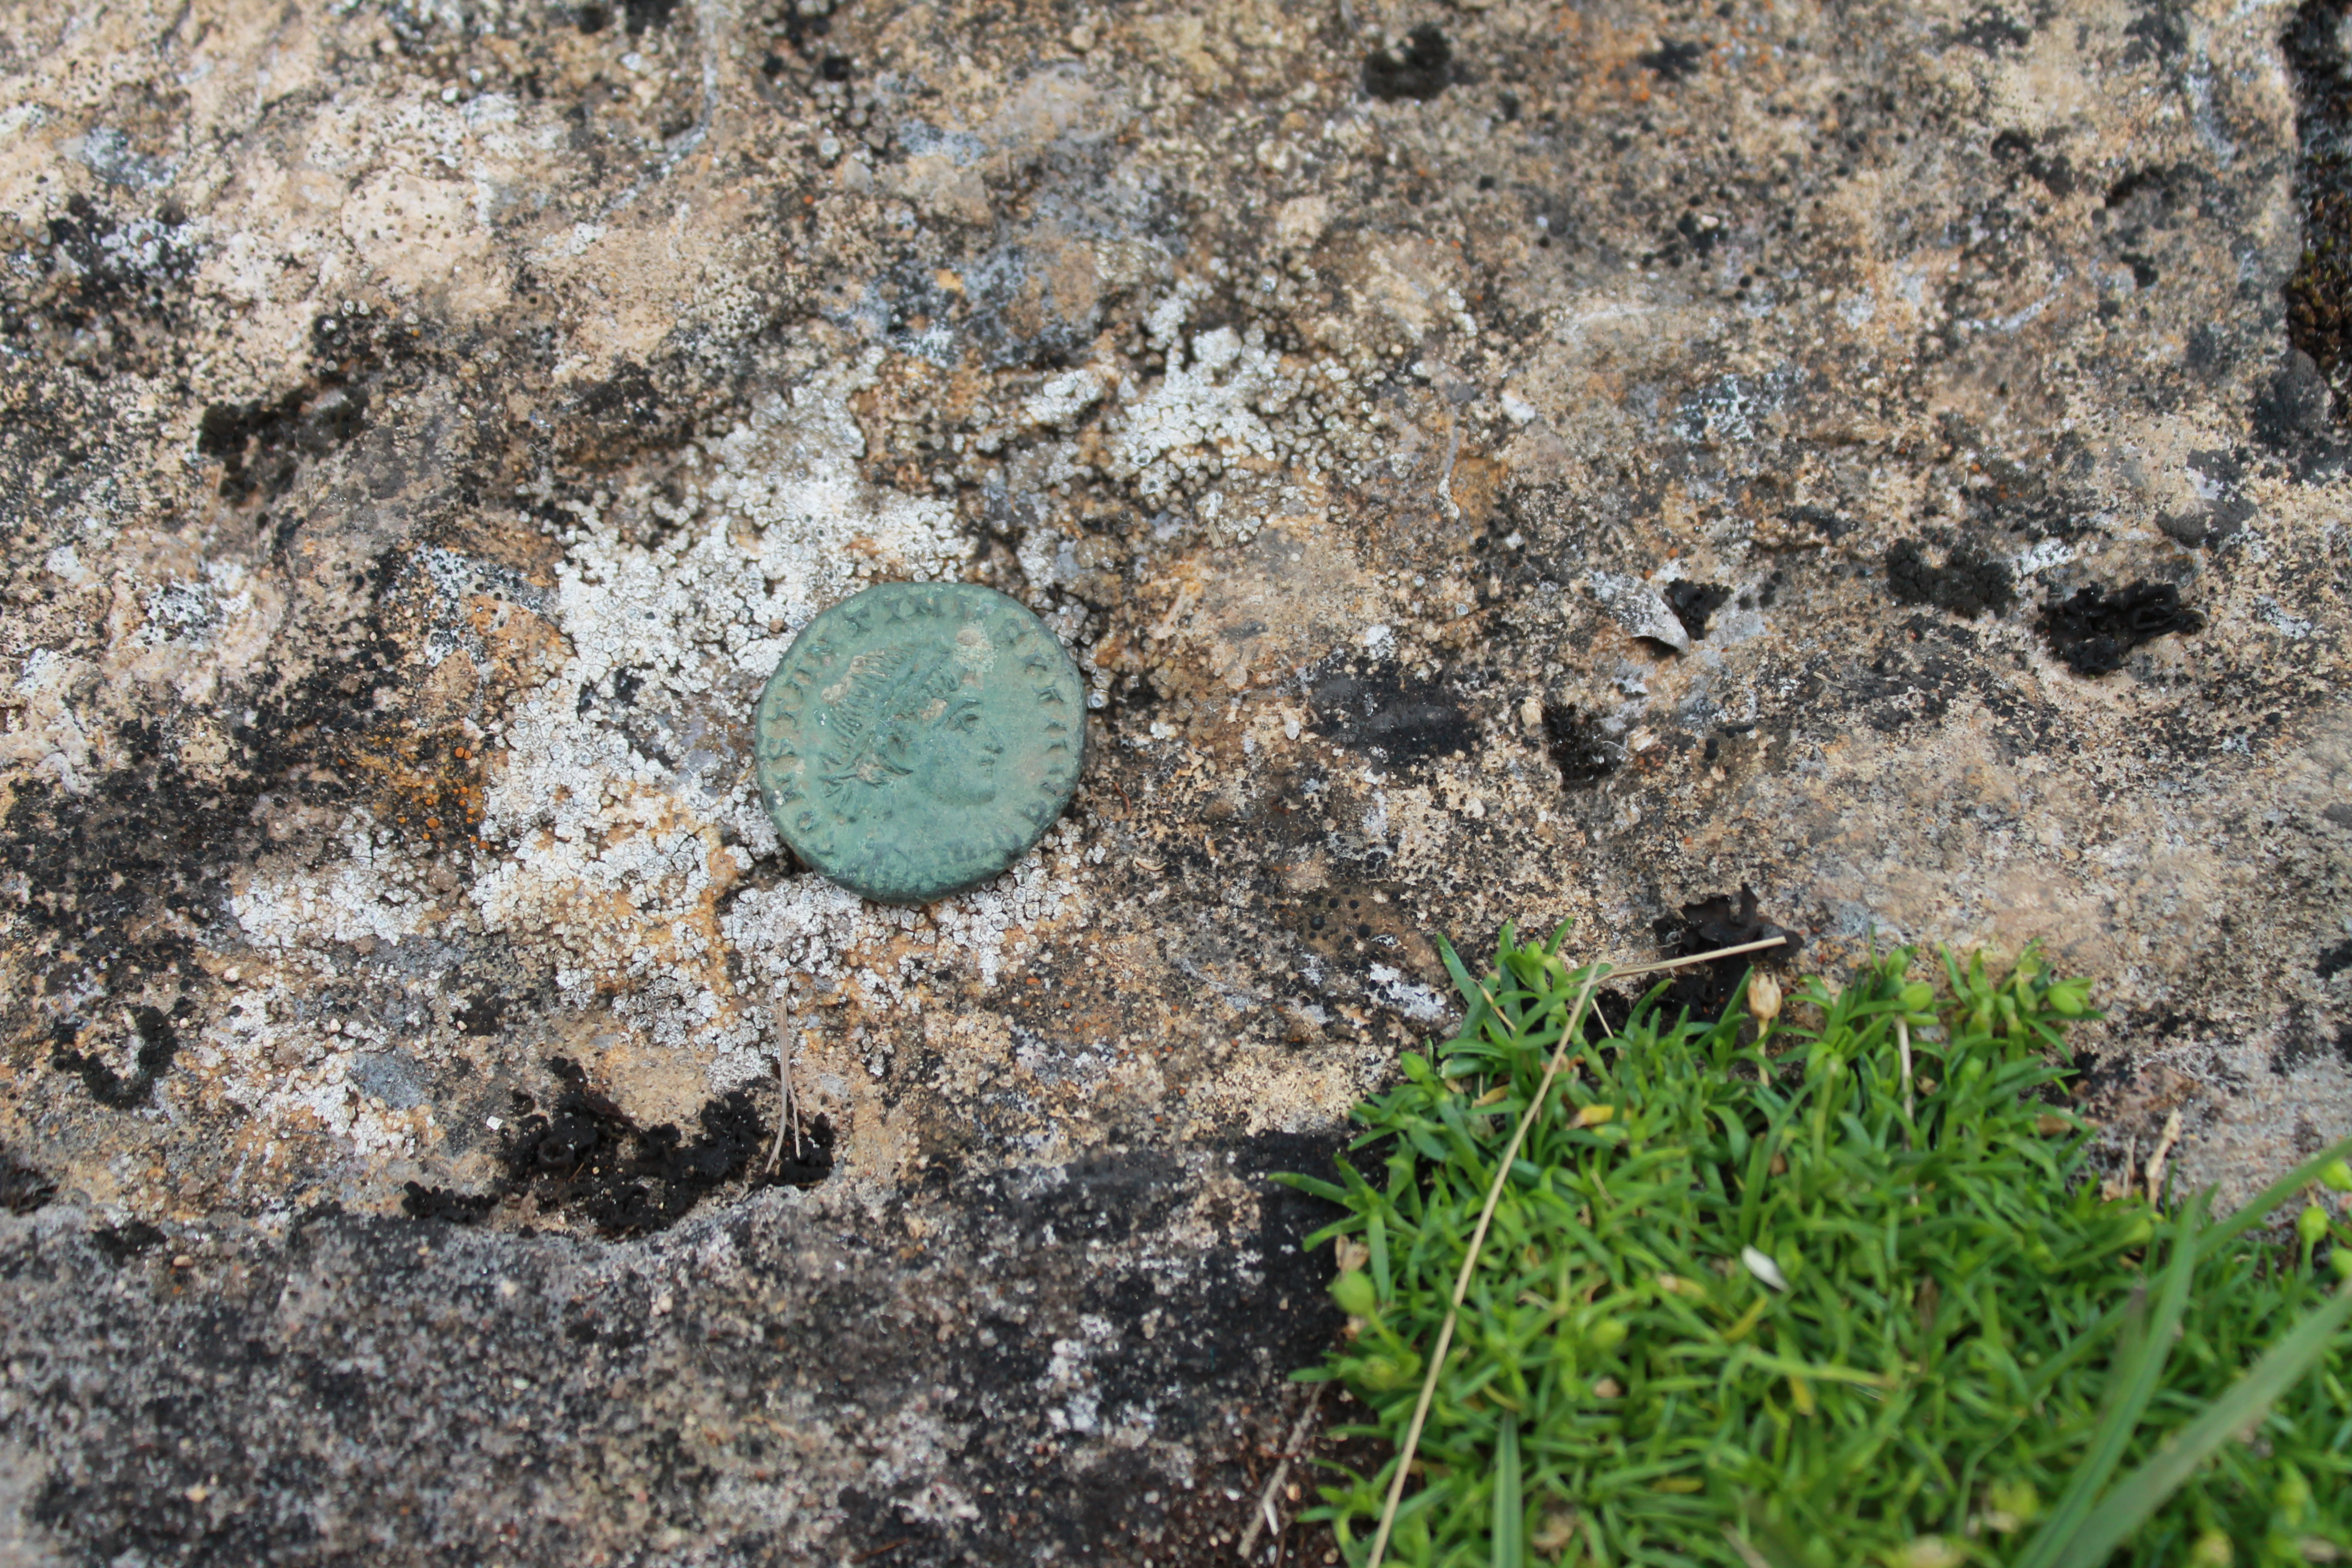 An early 4th century coin of Constantine the Great found amongst the rubble of the building found this year.